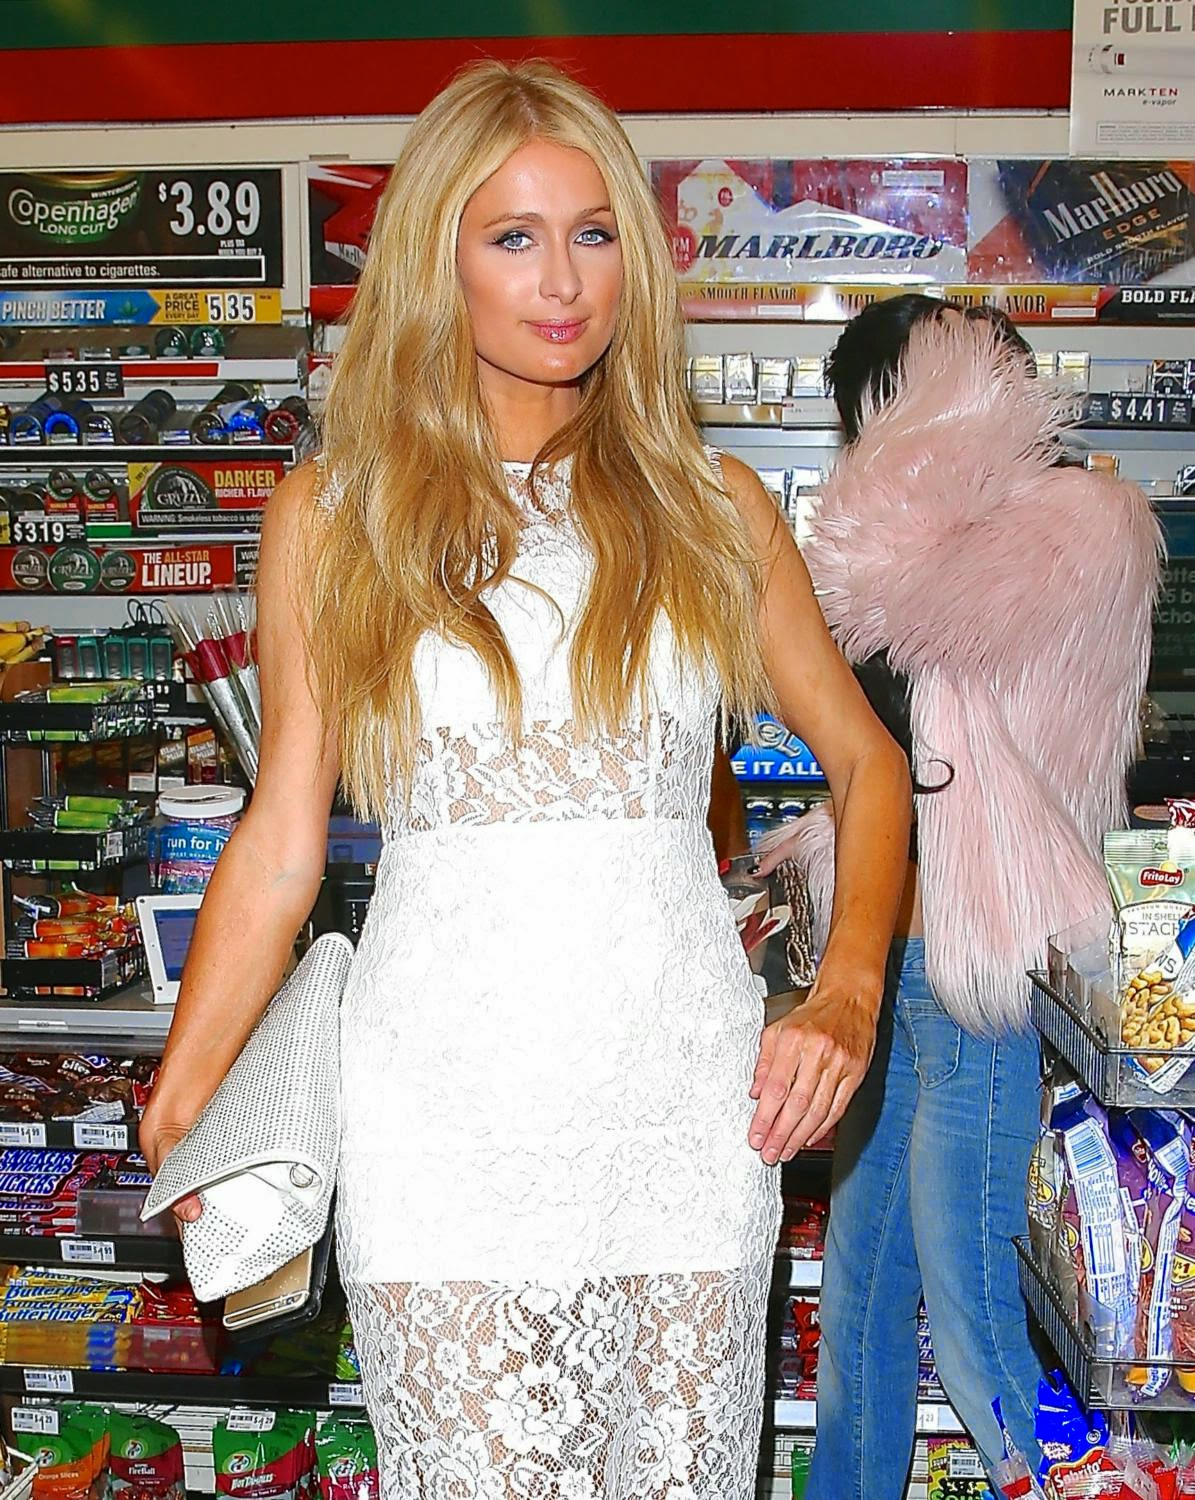 Hotel Heiress, Model , Actress @ Paris Hilton in Hollywood, March 2015